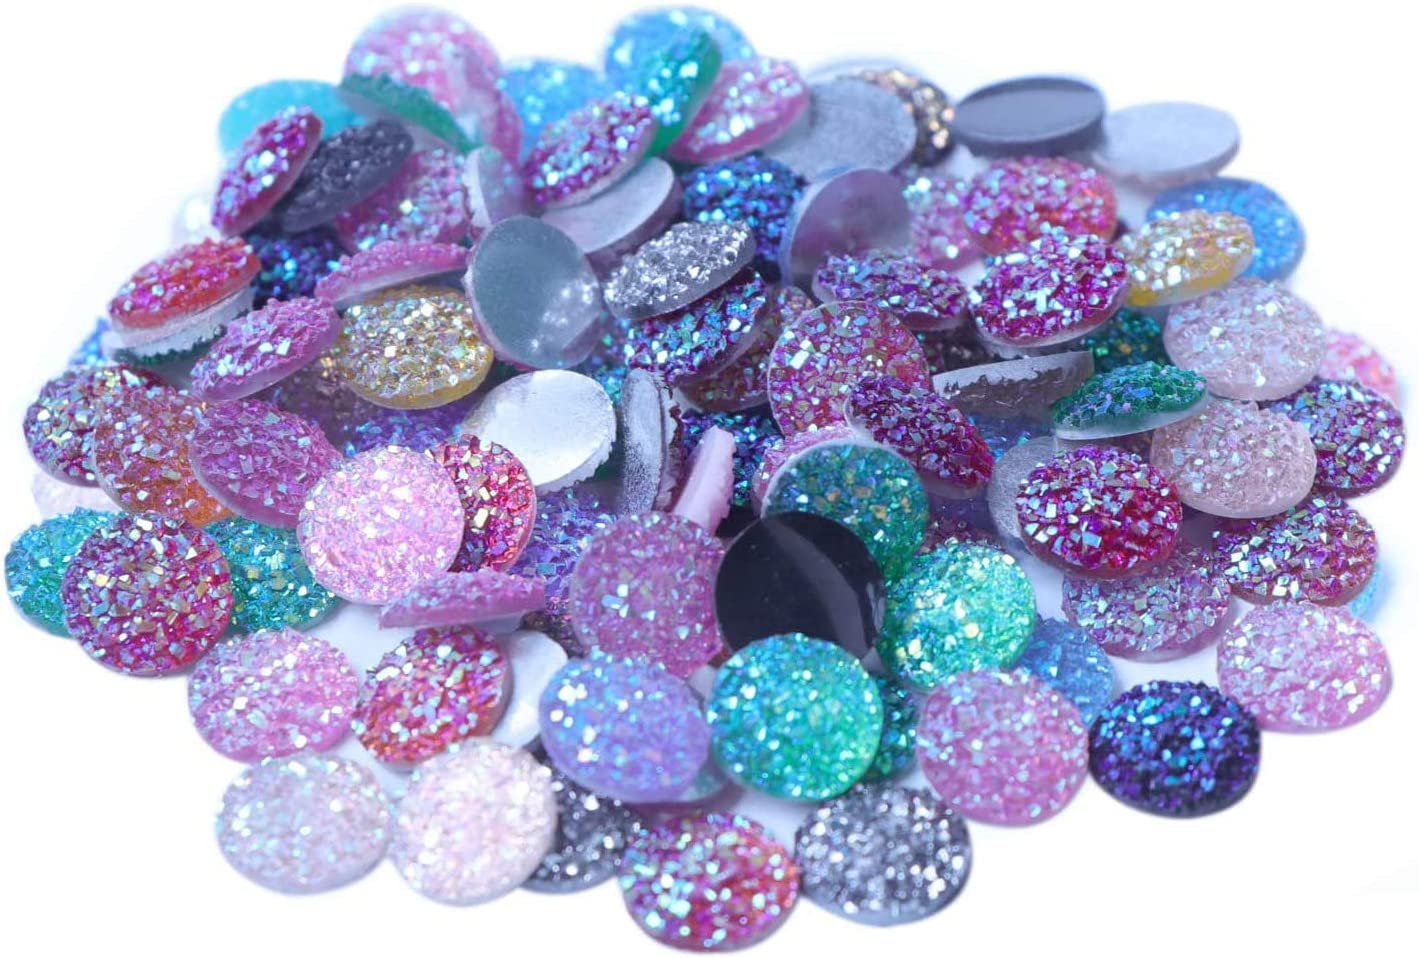 12mm Pink Glitter Ore Round Flat Back Resin Druzy Cabochons DIY Jewelry Set of 10